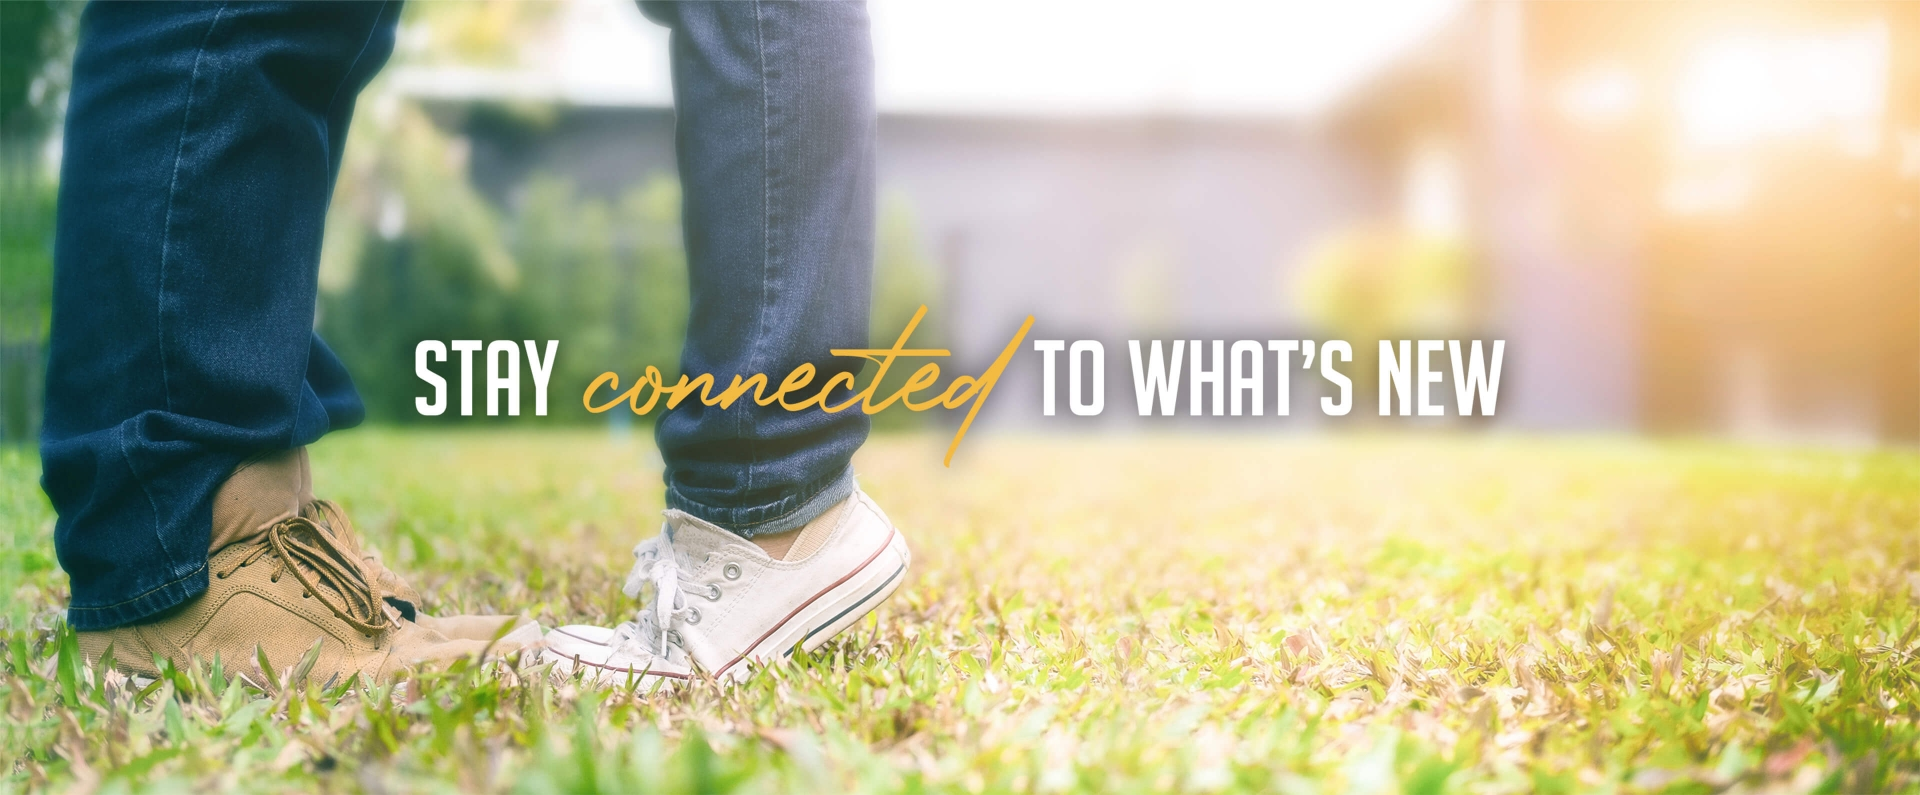 Stay Connected With whats New at The Groves Whittier